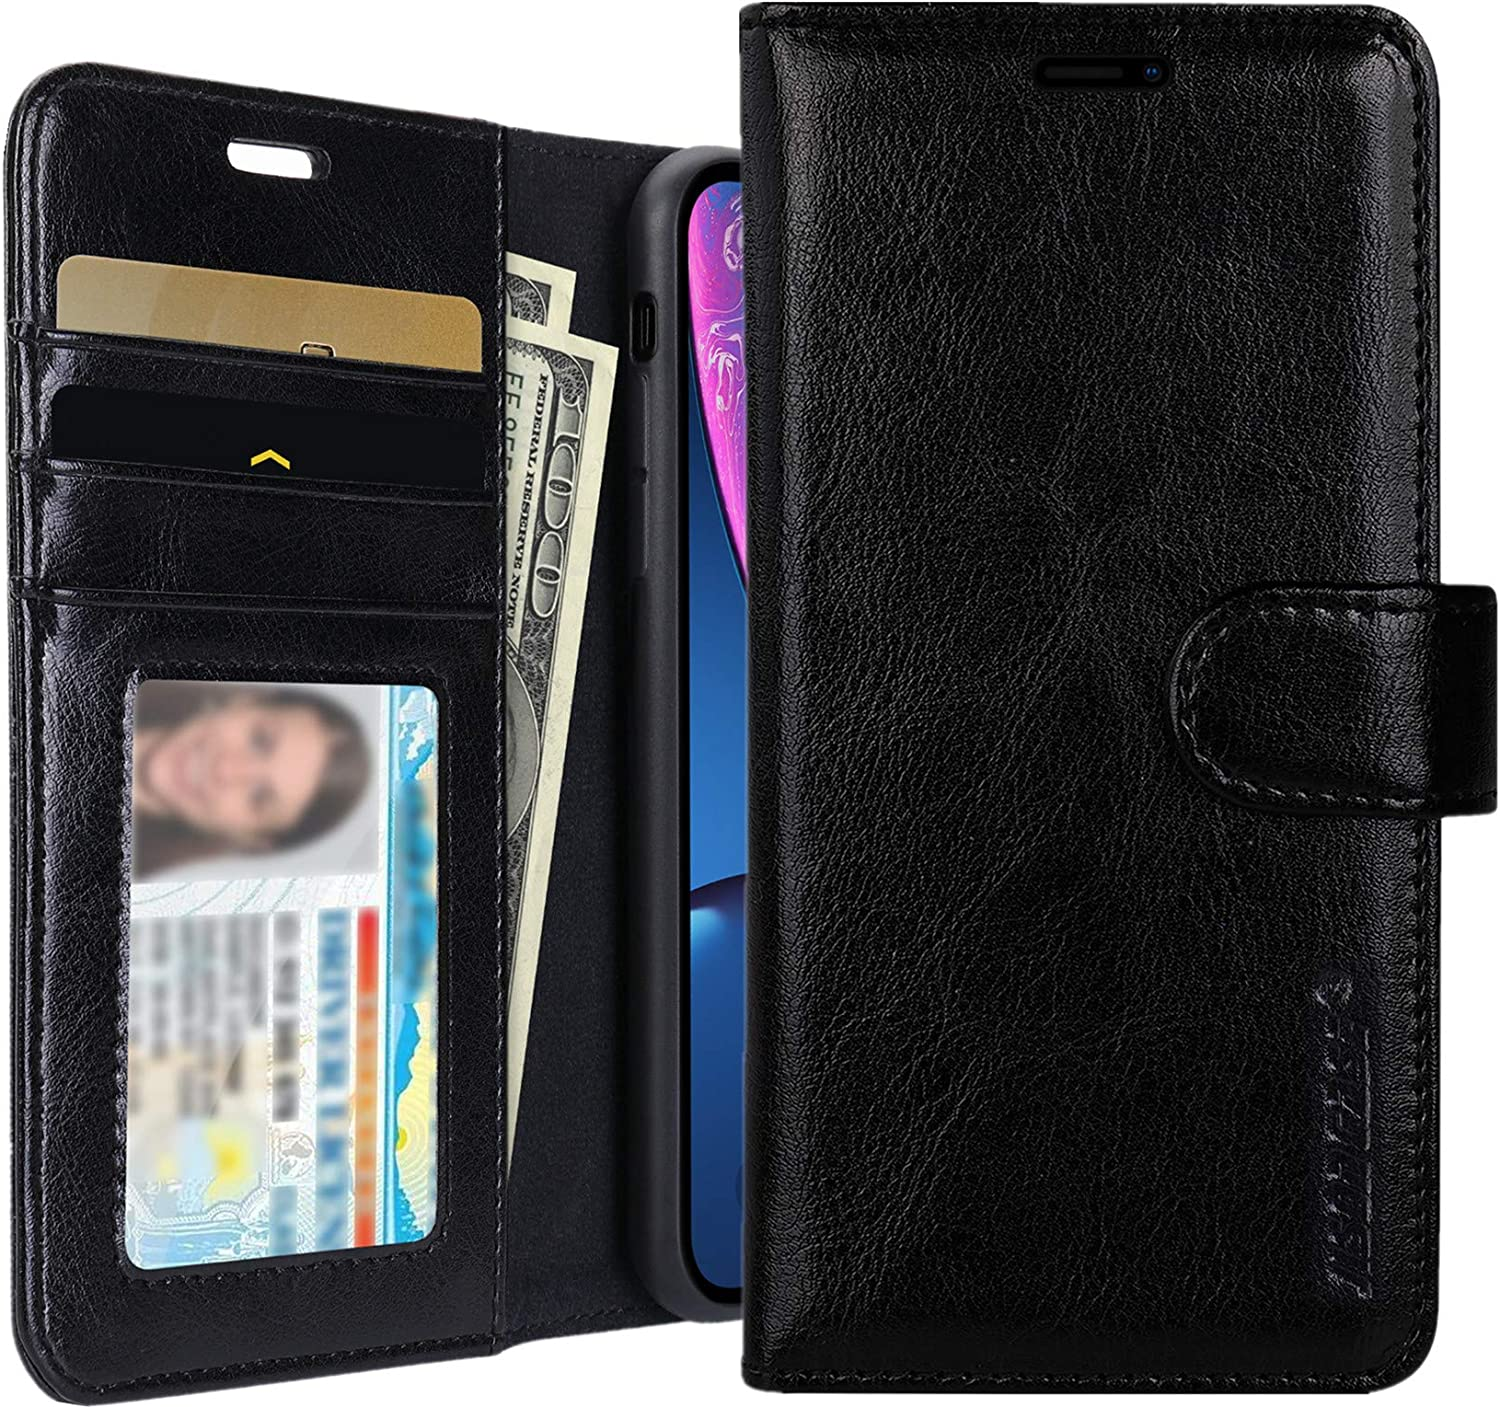 JISONCASE iPhone XR Wallet Case, Leather iPhone Xr Cases with Credit Card Holder Slot Magnetic Closure Shockproof Protective Flip Case for Apple iPhone XR 6.1 inch, Black